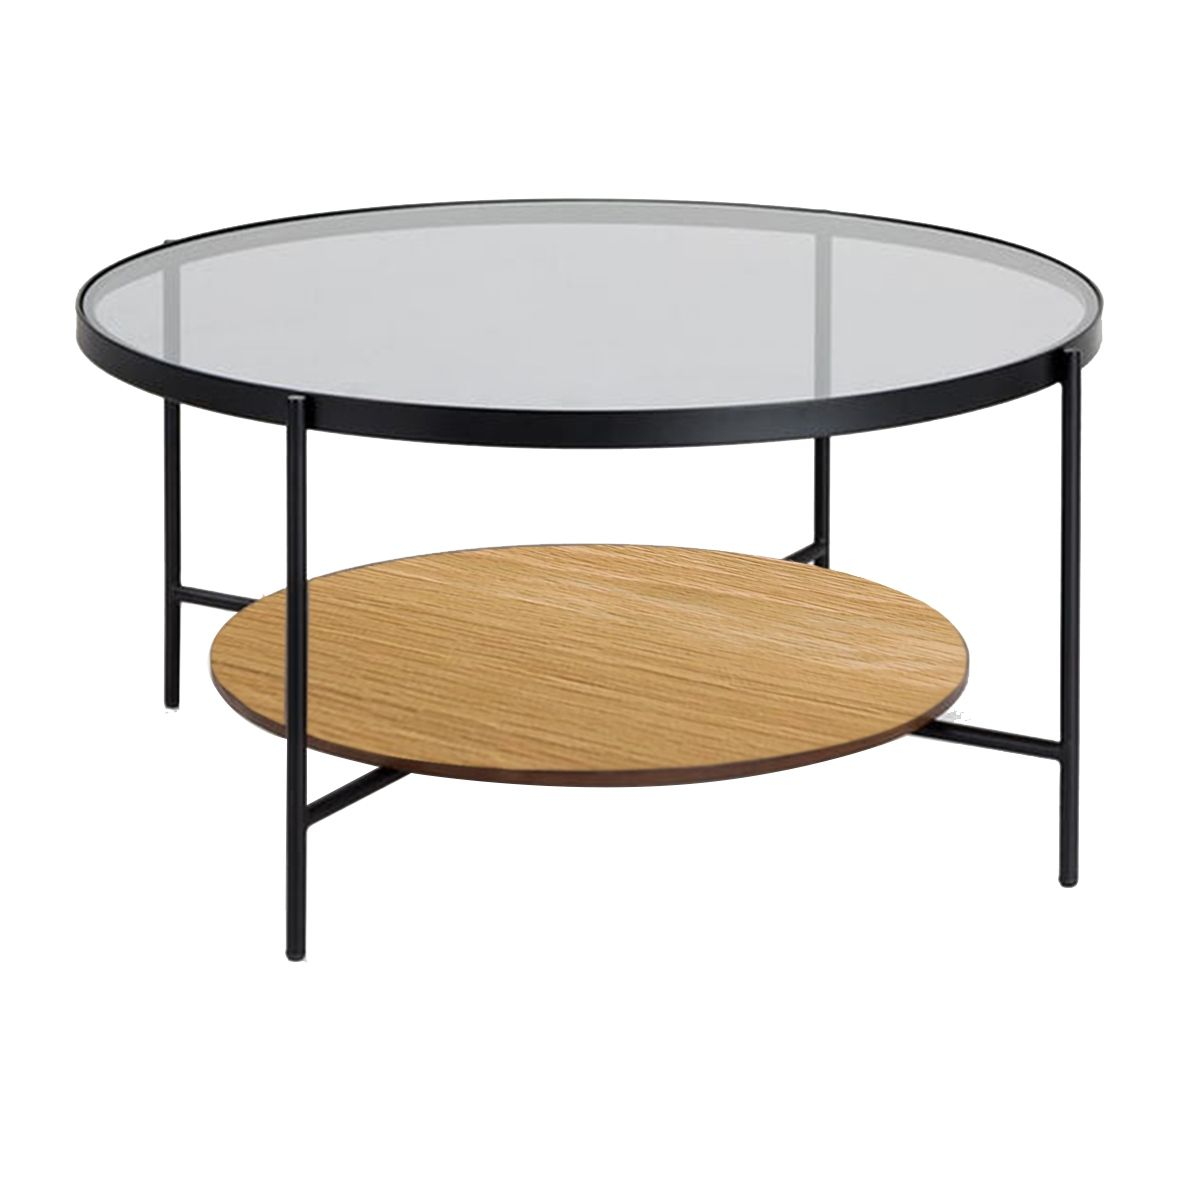 Glam Coffee Table Oak In 2020 Glam Coffee Table Steel Coffee Table Coffee Table [ 1200 x 1200 Pixel ]